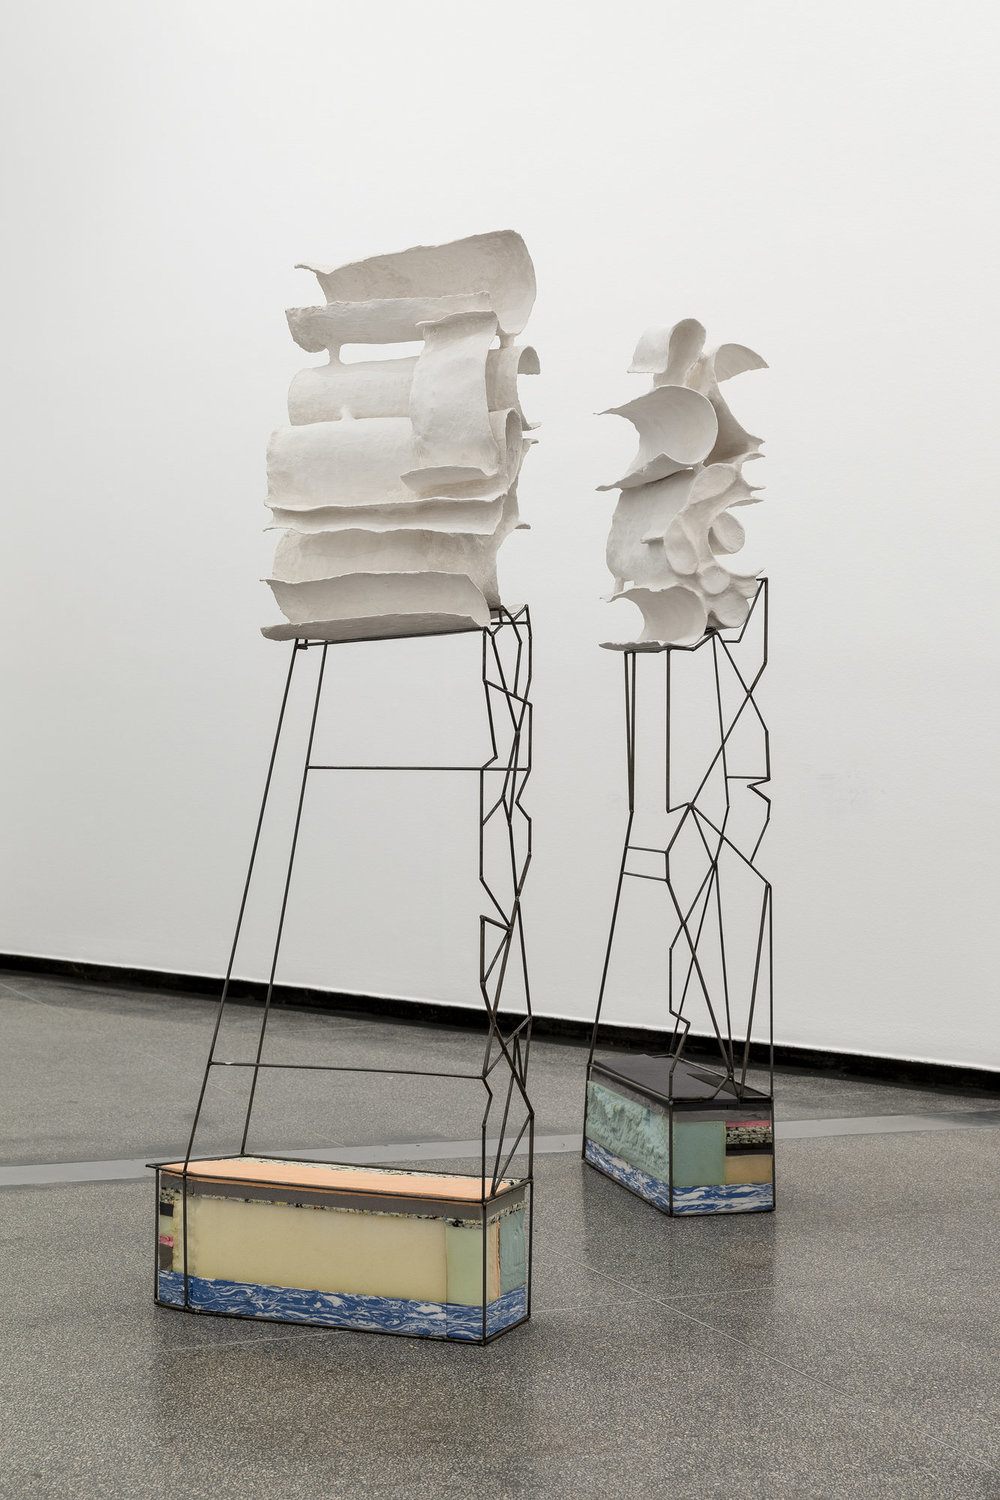 Dwelling-Poetically-at-Australian-Centre-for-Contemporary-Art-Works-48-1.jpg